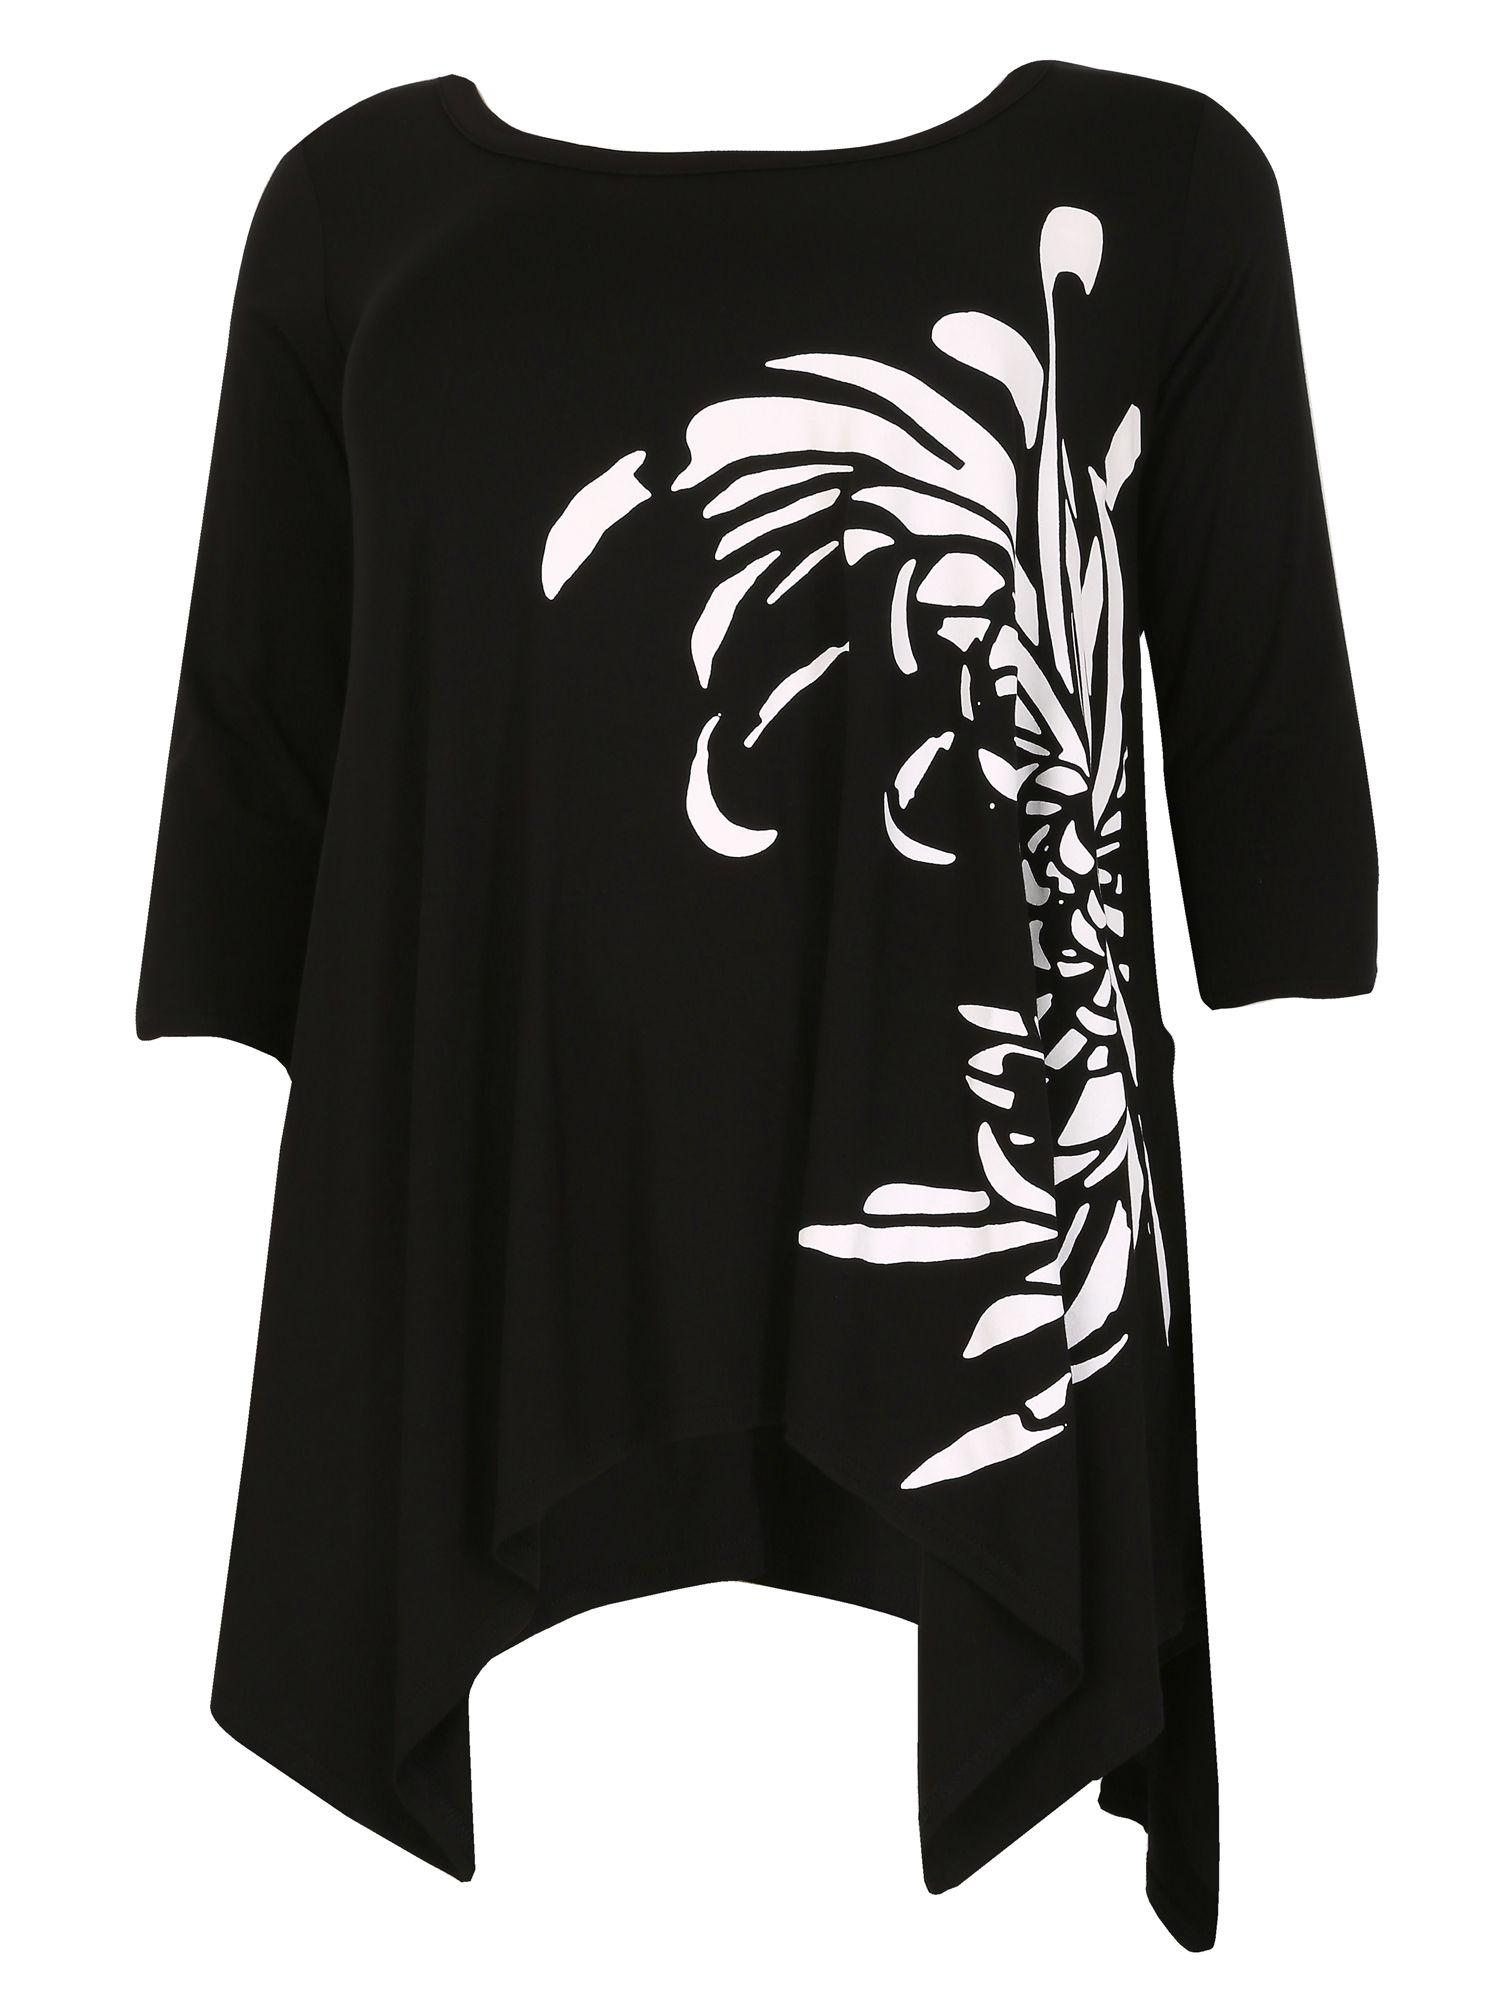 Samya Plus Size Asymmetric Print Tunic Top, Black